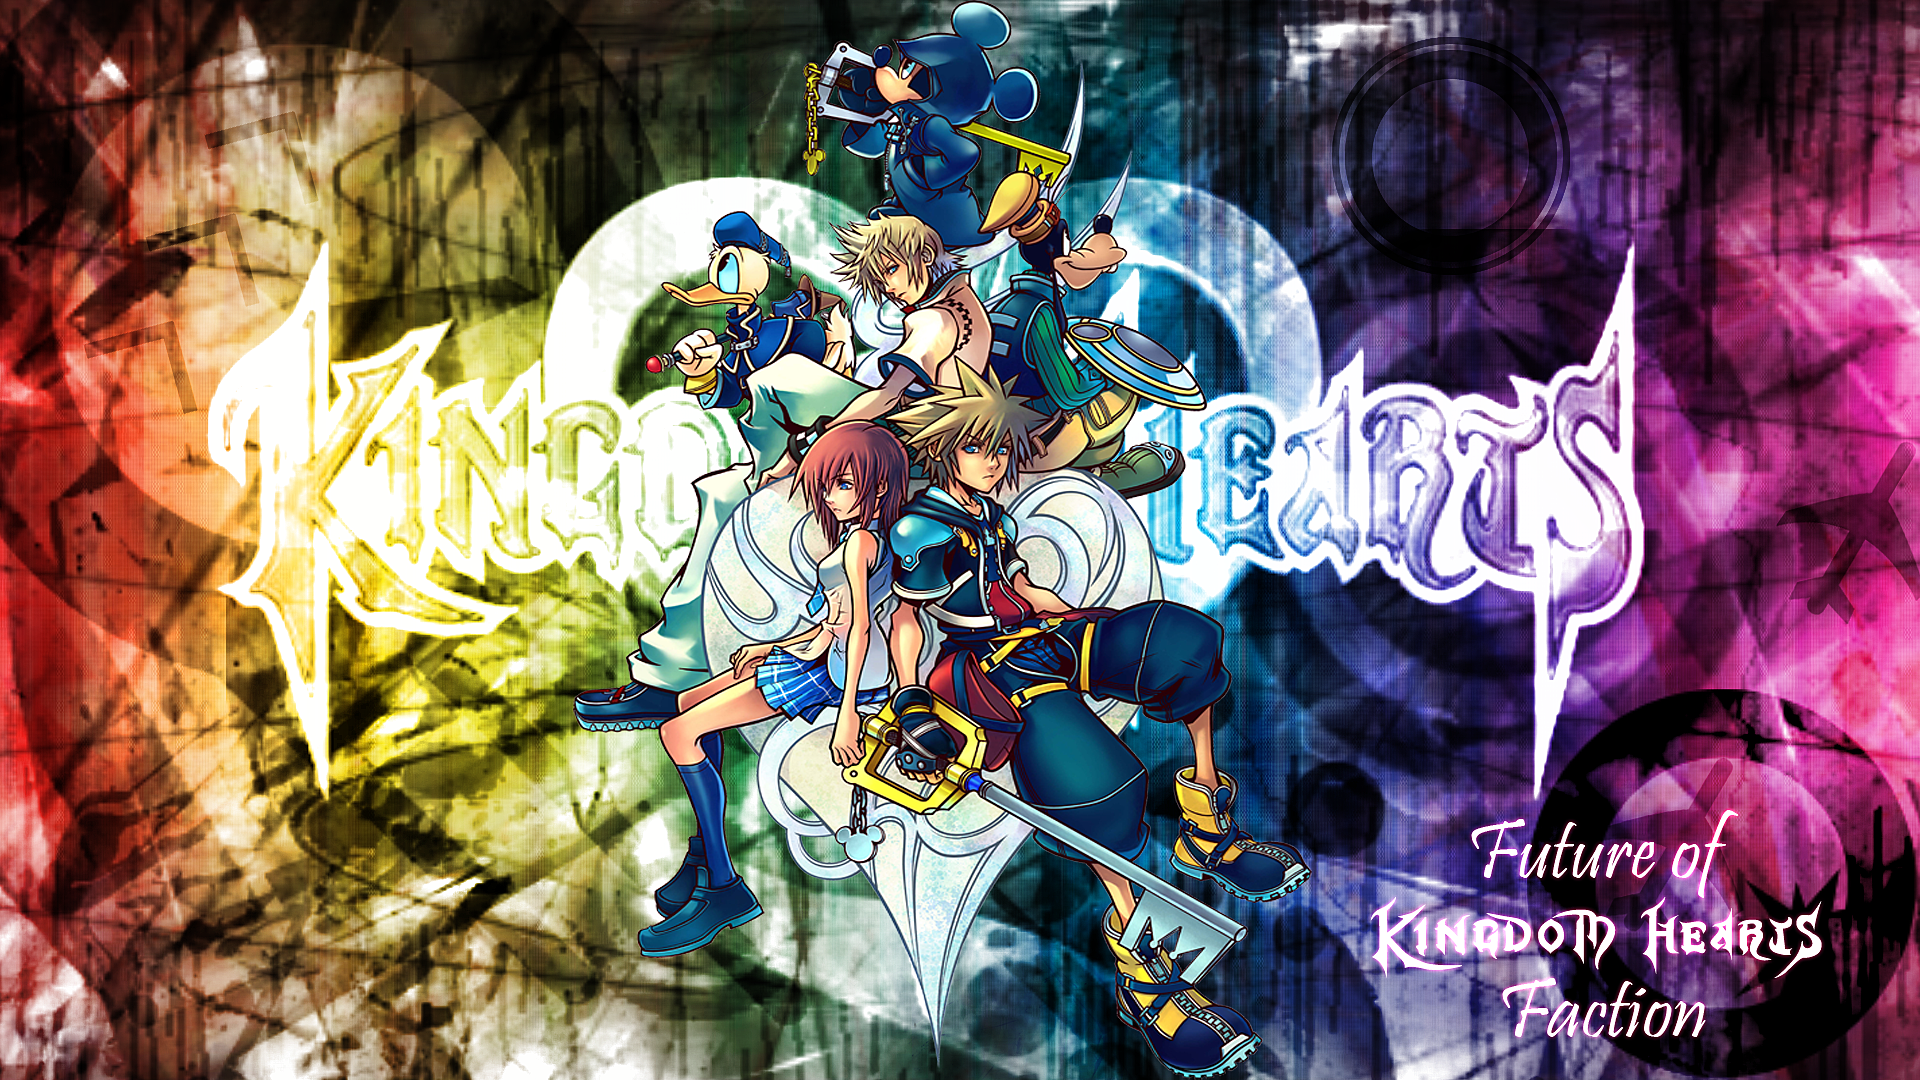 about Kingdom Hearts 2 or even videos related to Kingdom Hearts 2 1920x1080